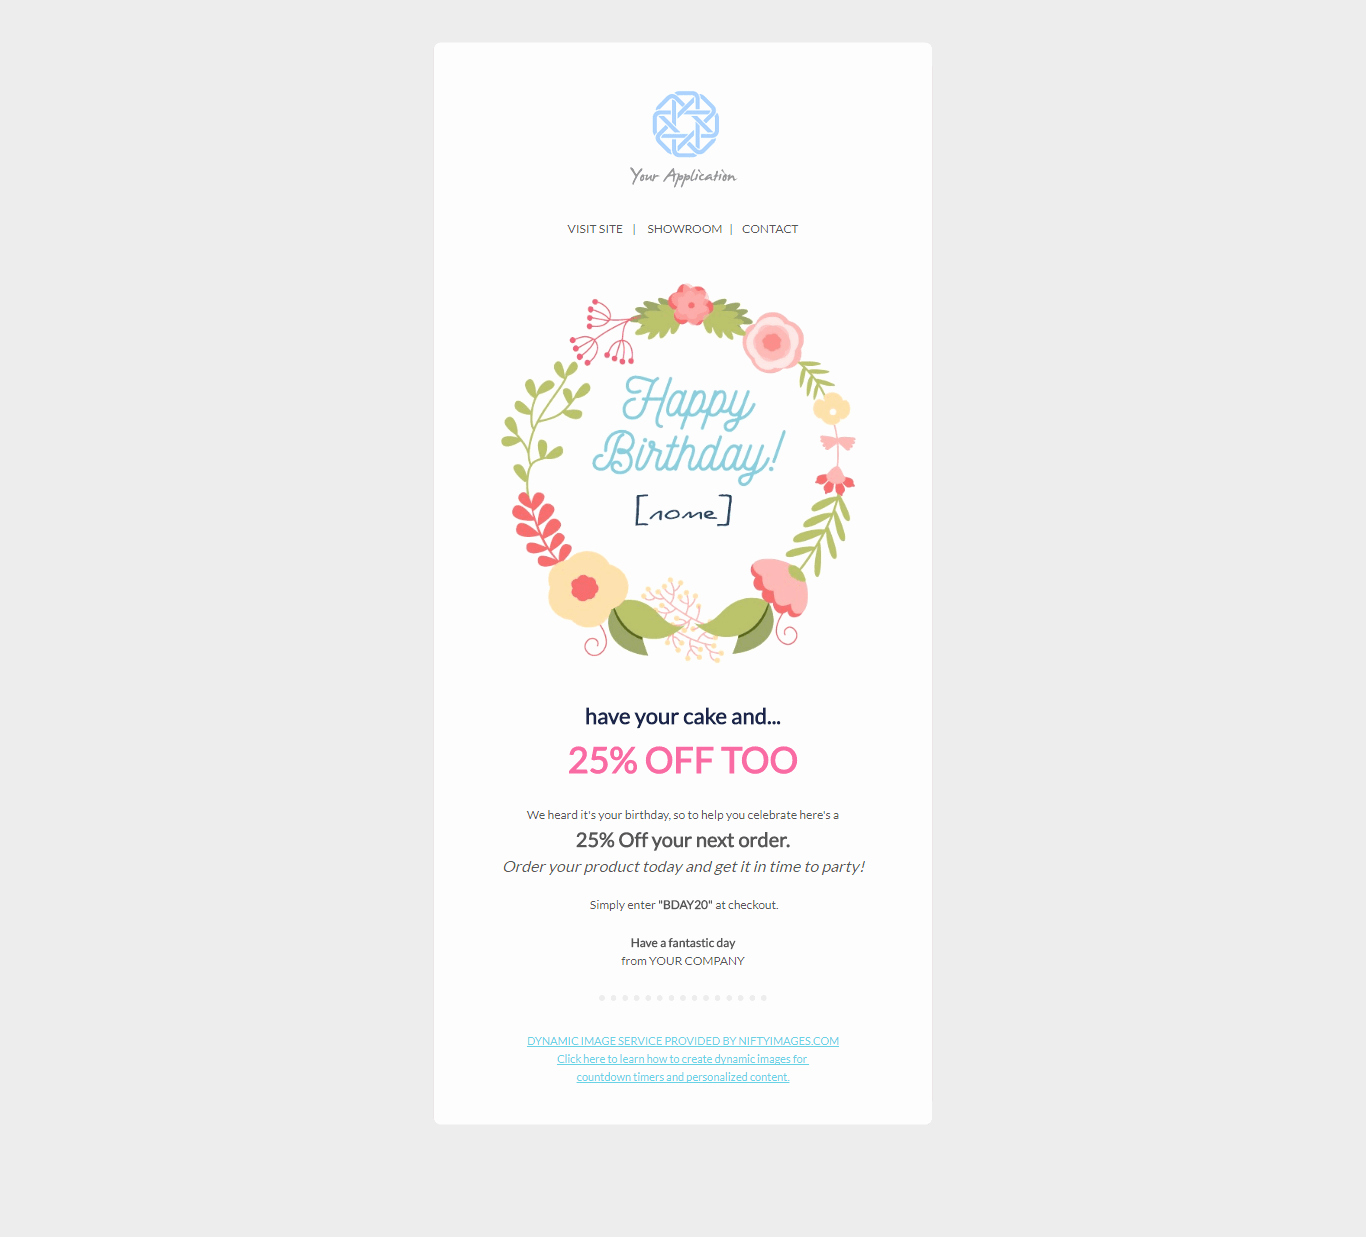 Happy Birthday Email Template Beautiful How to Find the Perfect Email Templates